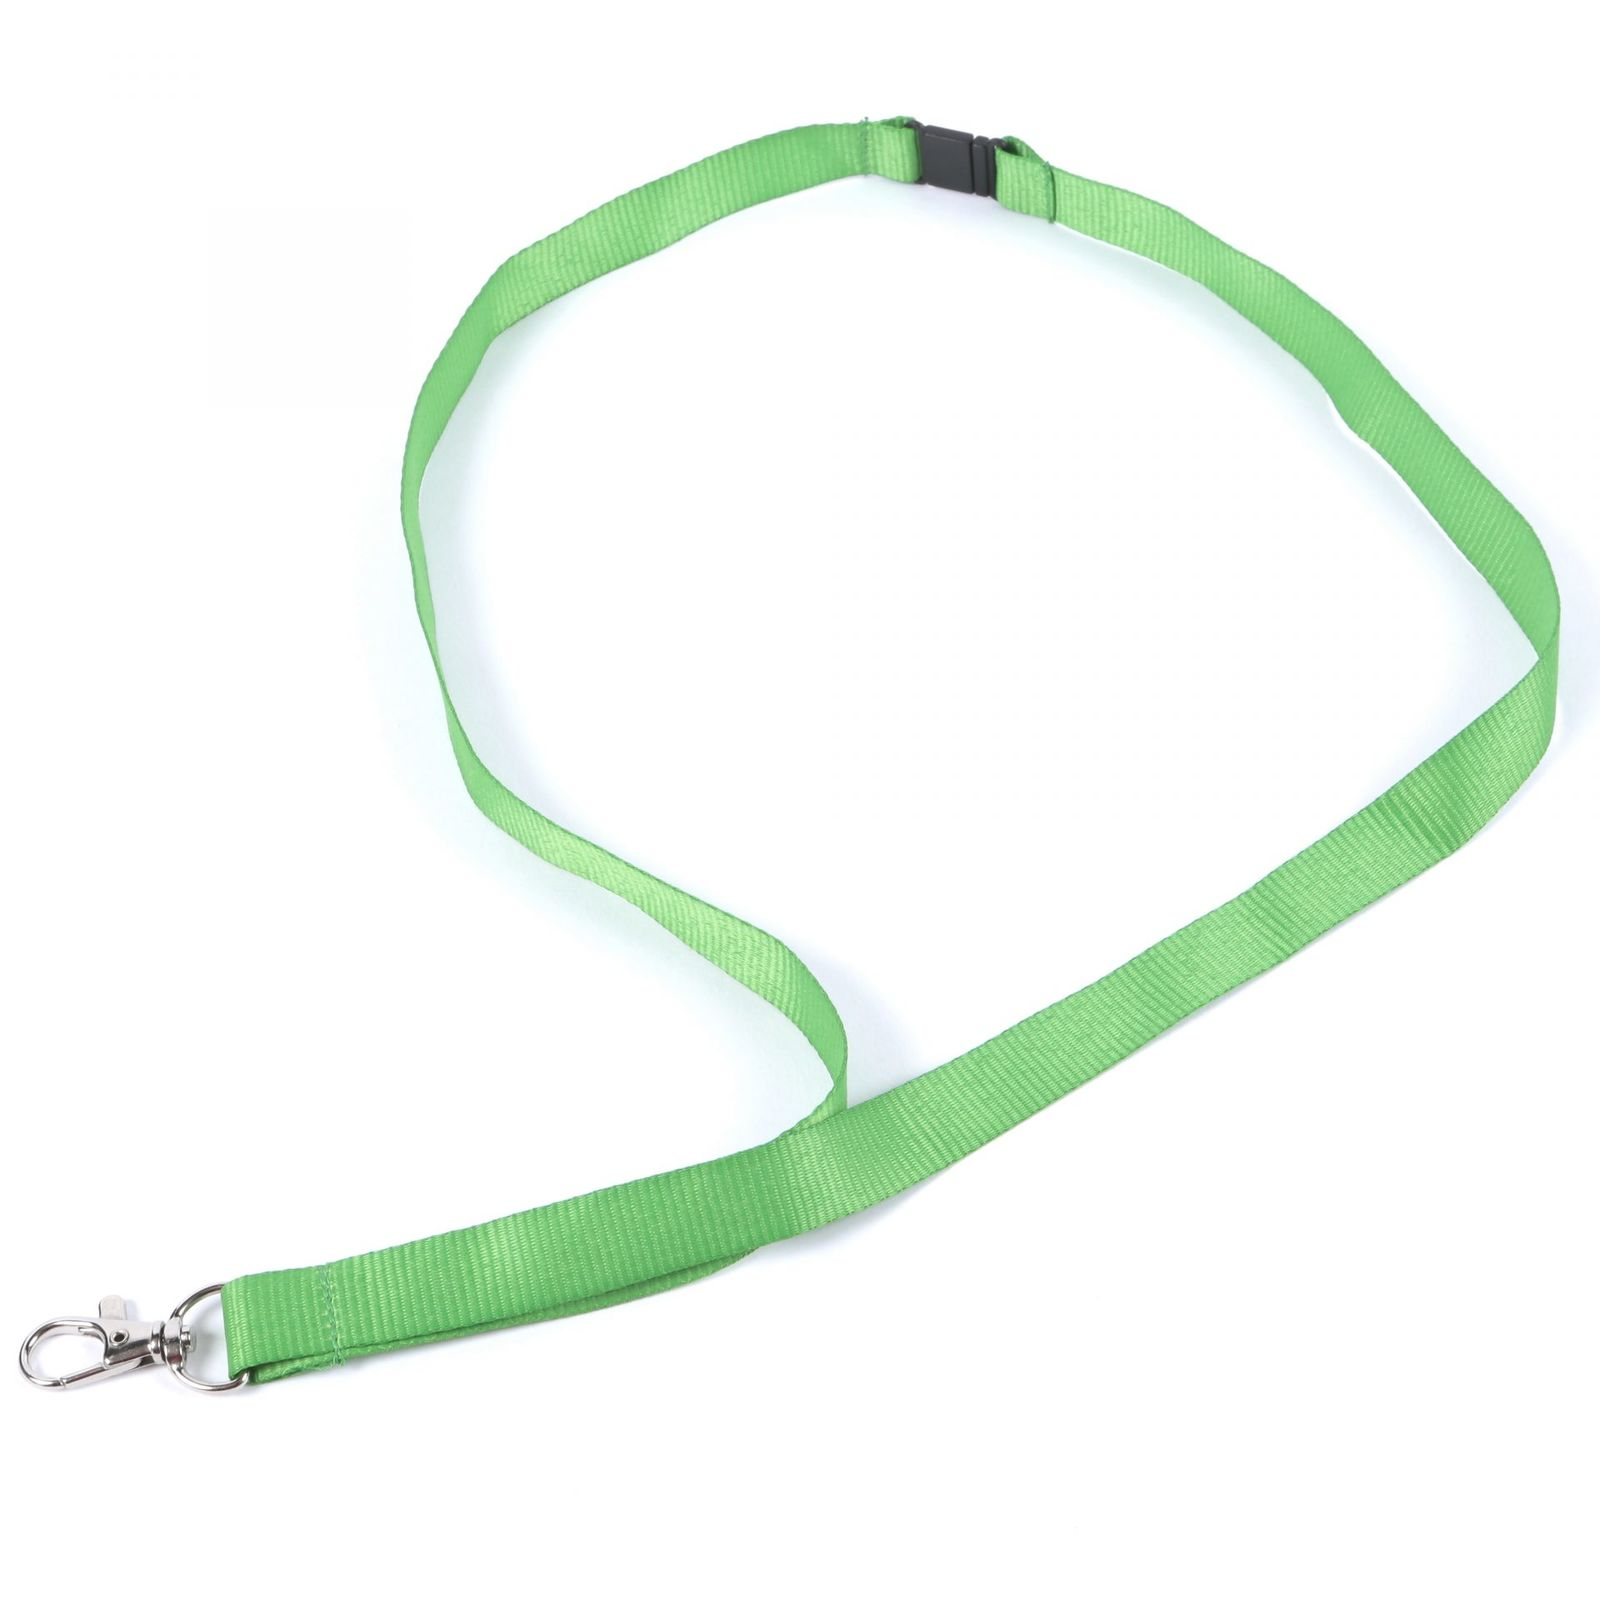 Buy Mixed Colours Plain Lanyards on Lanyards Direct Today!